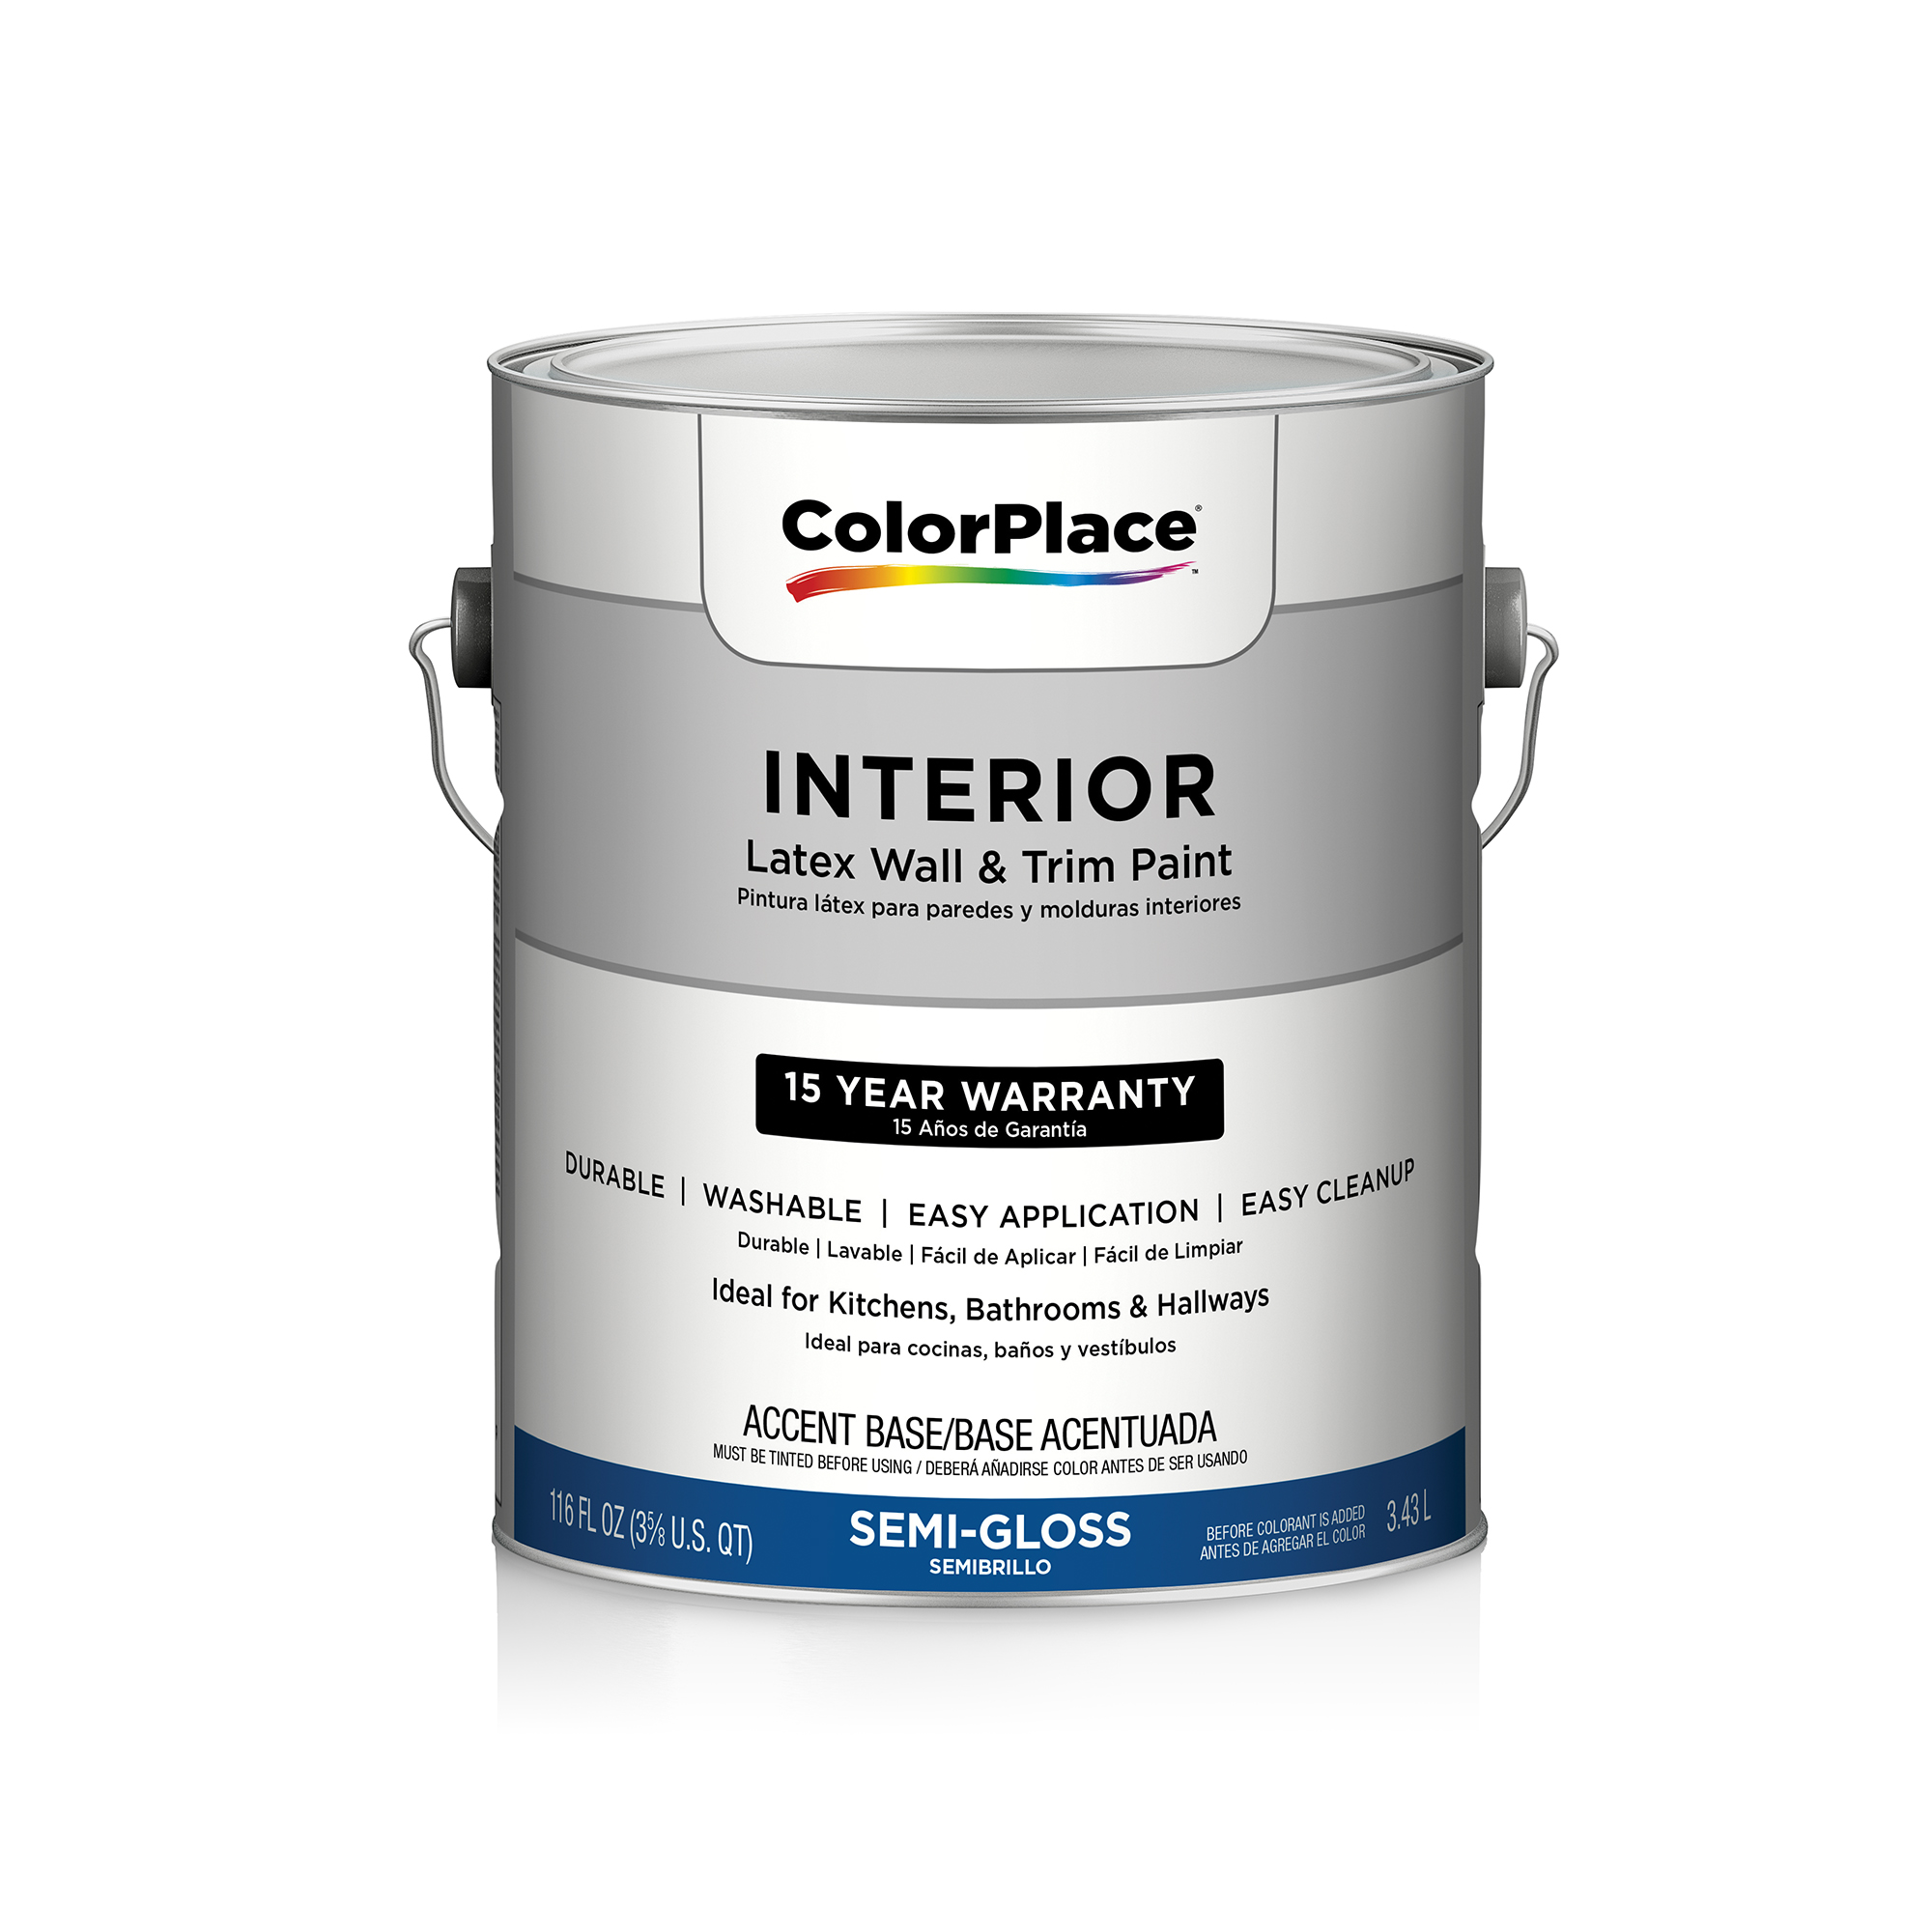 ColorPlace Interior Semi-Gloss Accent Base Paint, 1 Gal